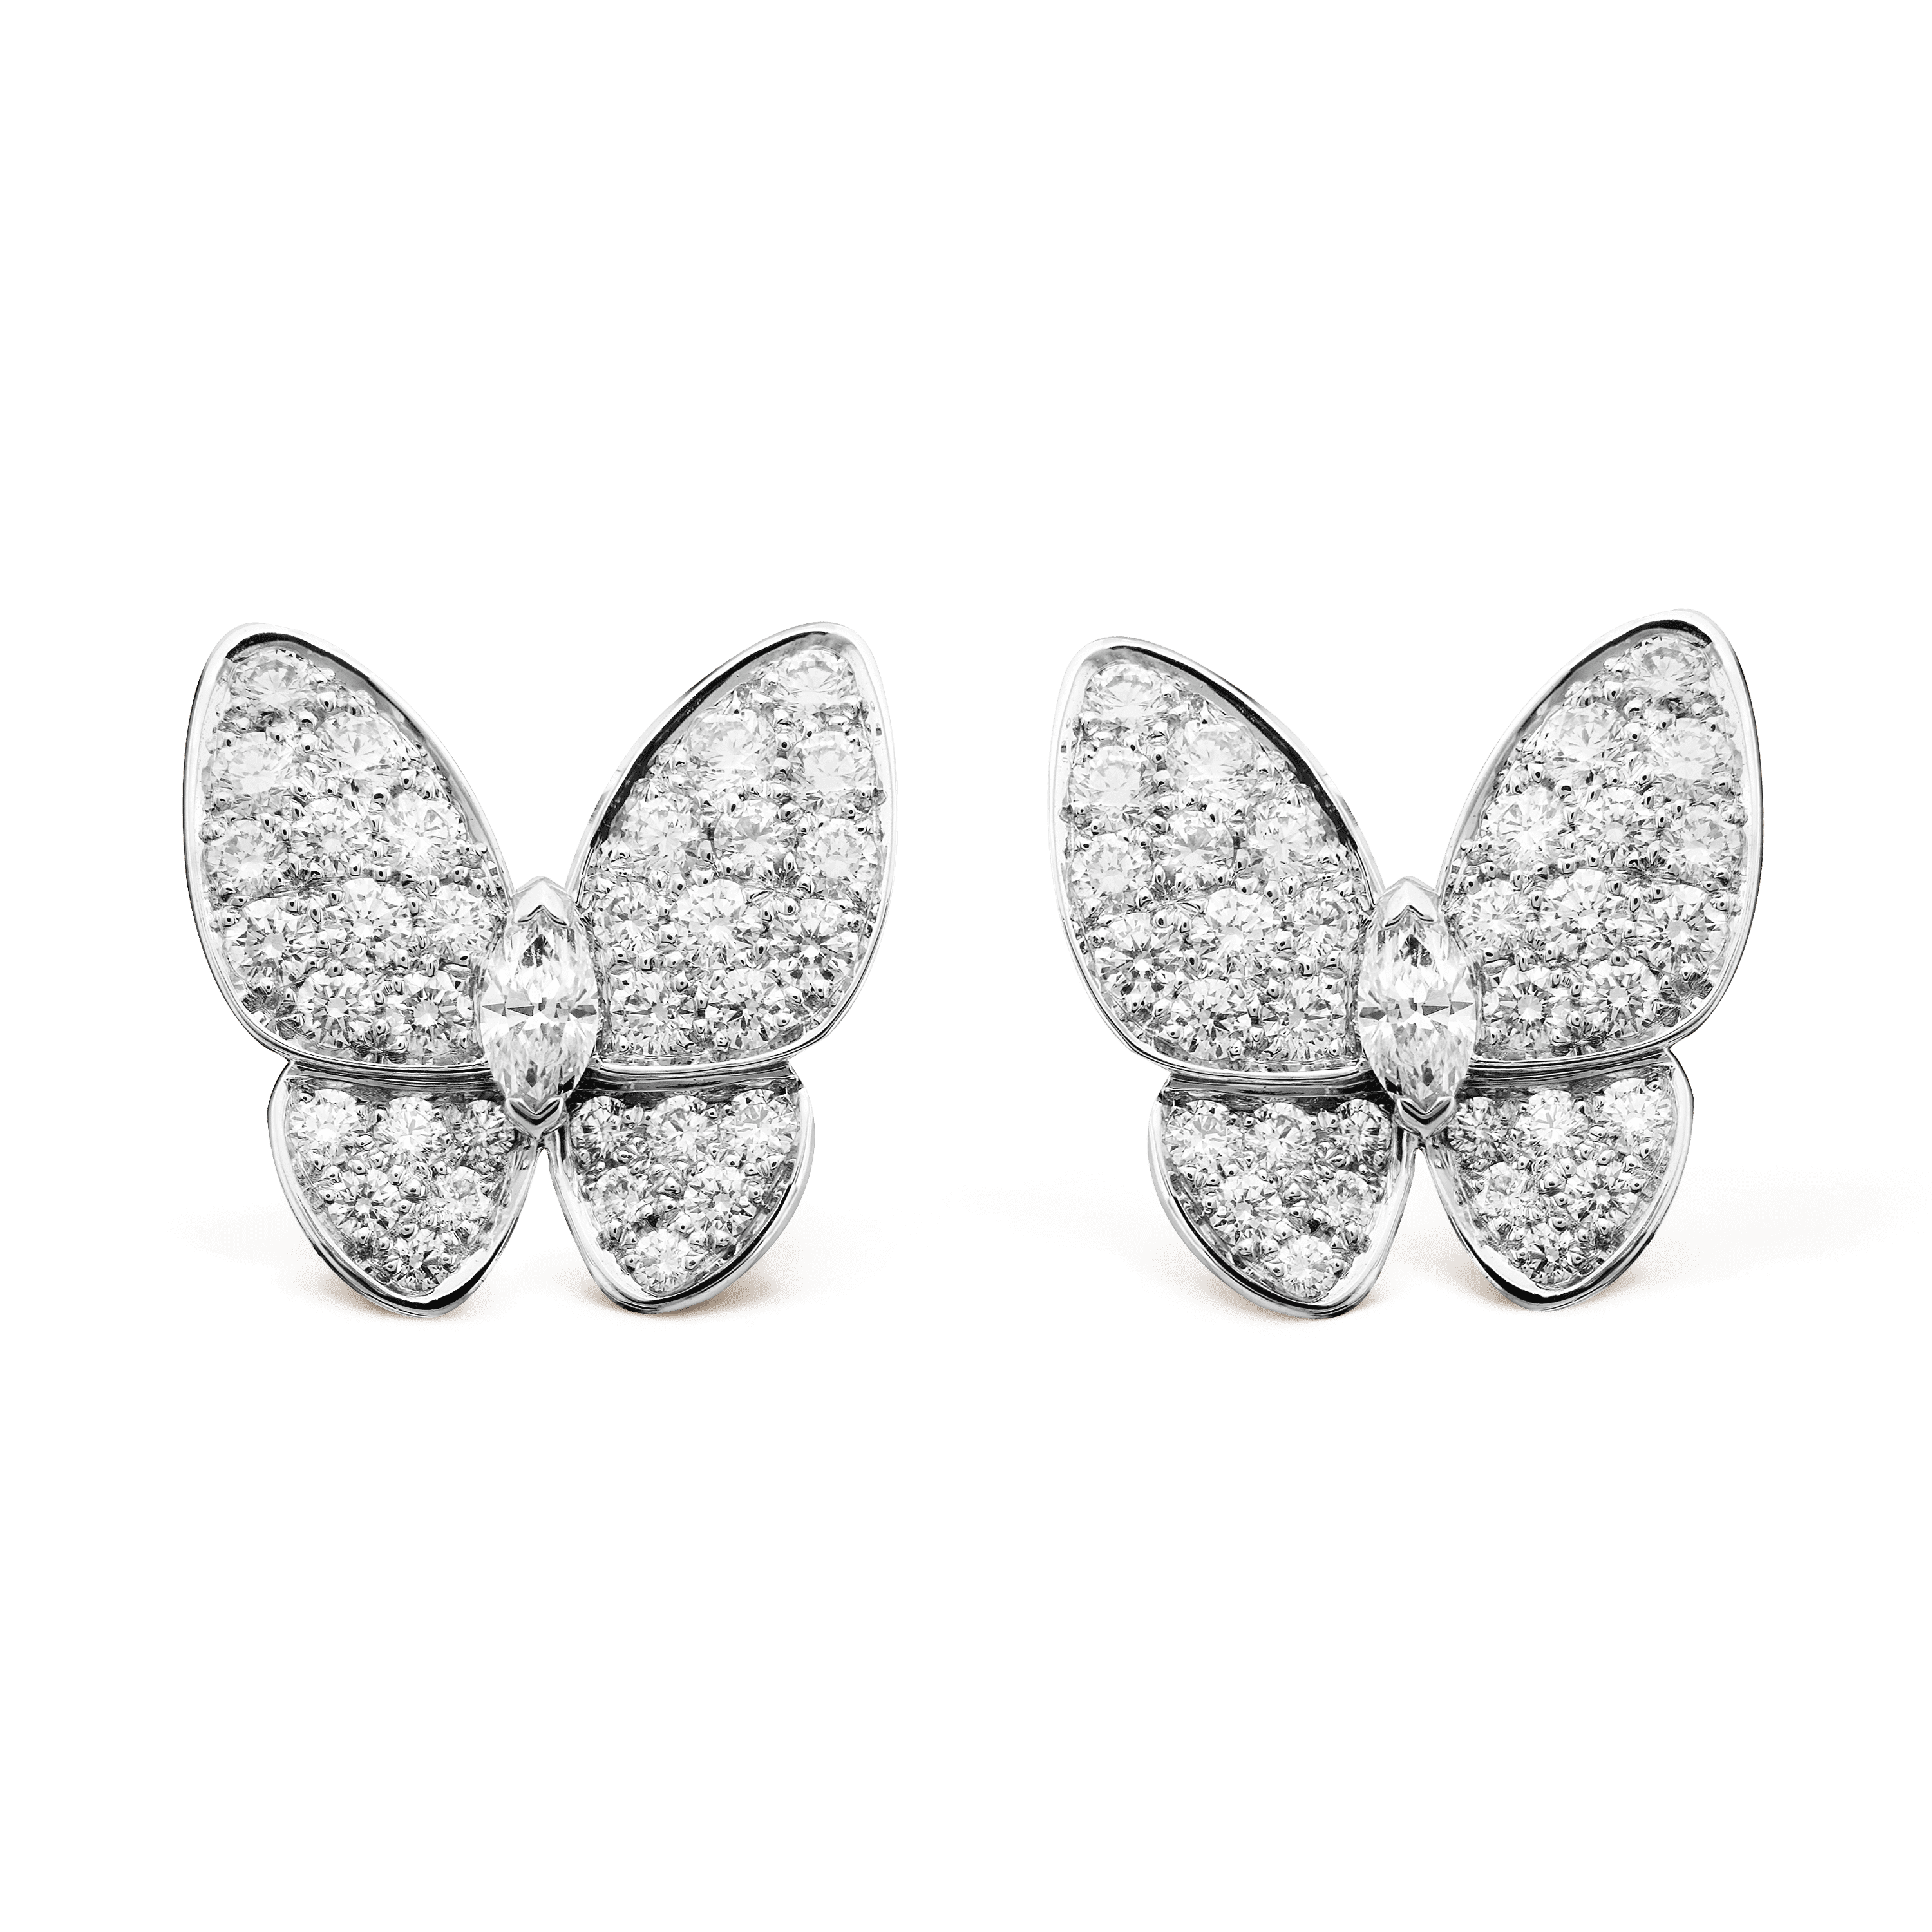 Two Butterfly earrings, - Front View - VCARB82900 - Van Cleef & Arpels